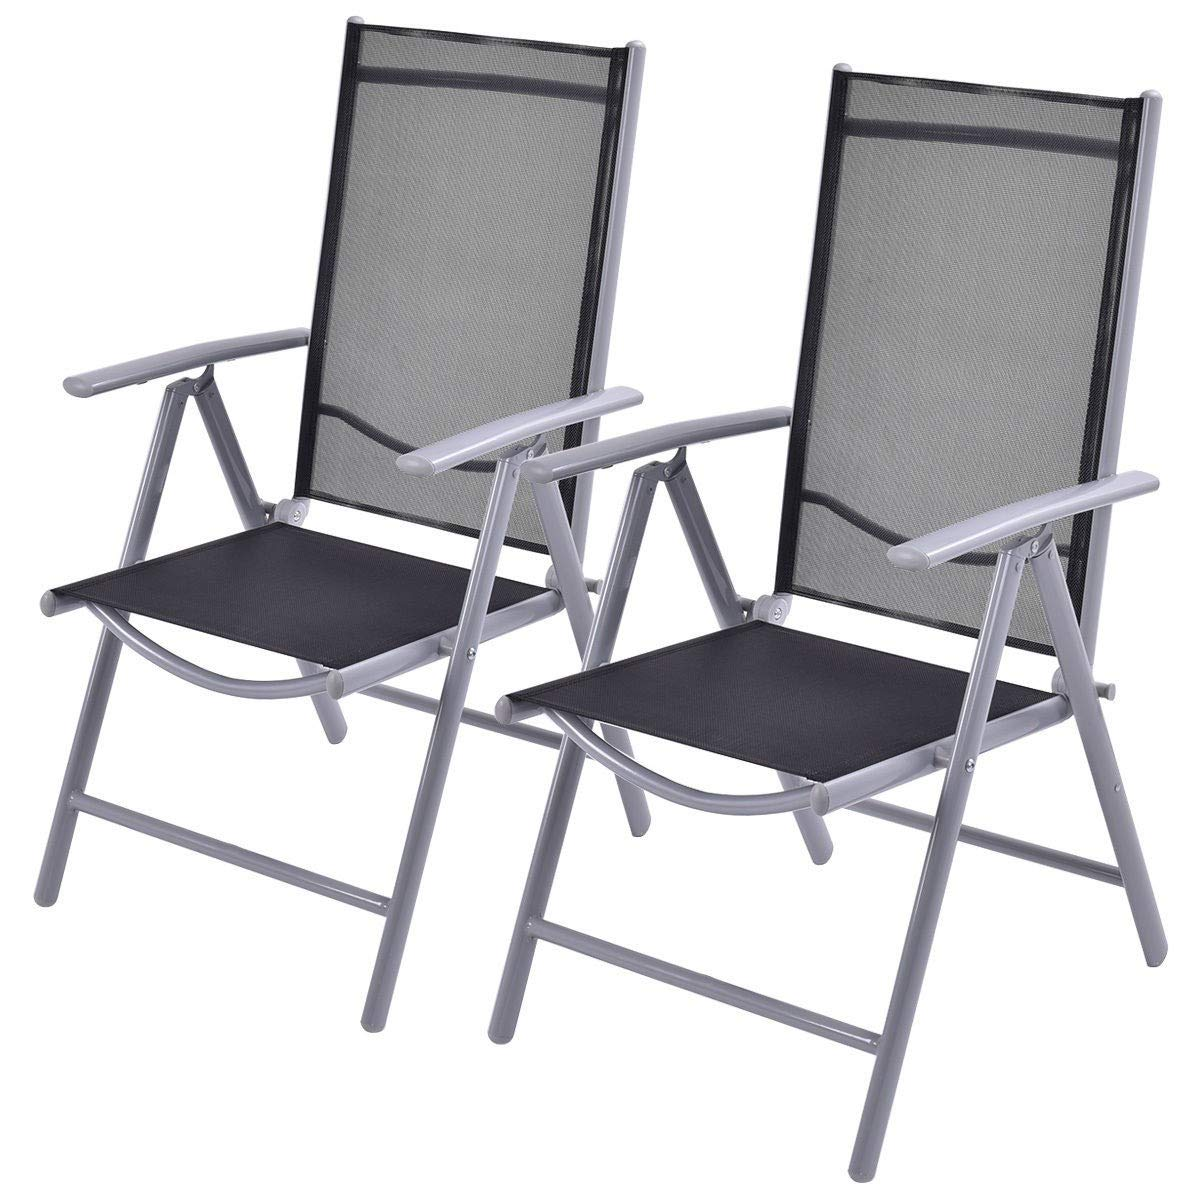 Set of 2 Patio Folding Chairs Adjustable Reclining Indoor Outdoor Garden Pool